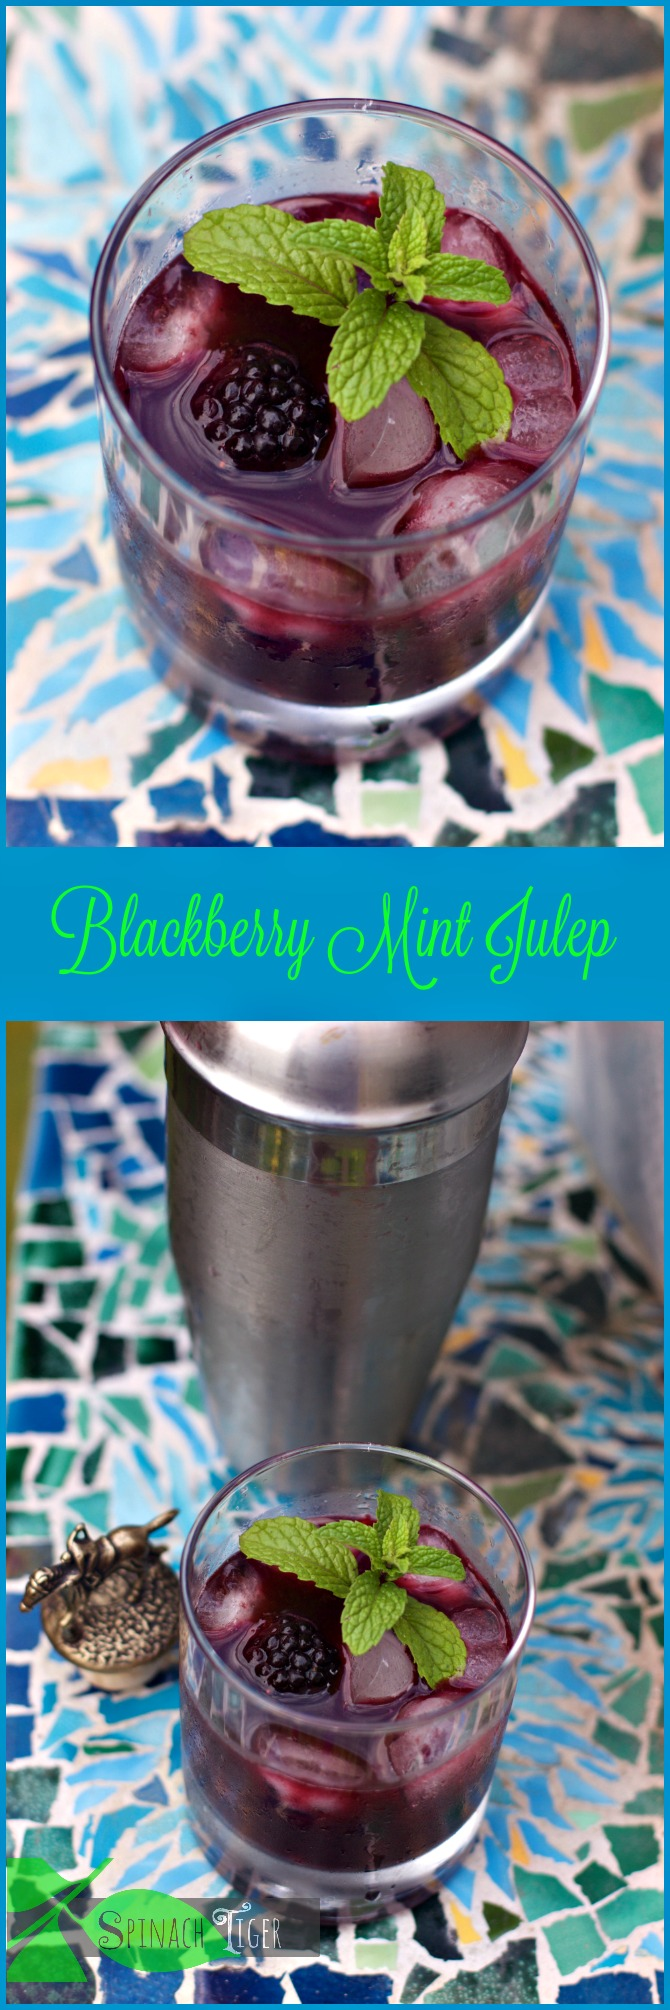 Blackberry Mint Julep by Angela Roberts